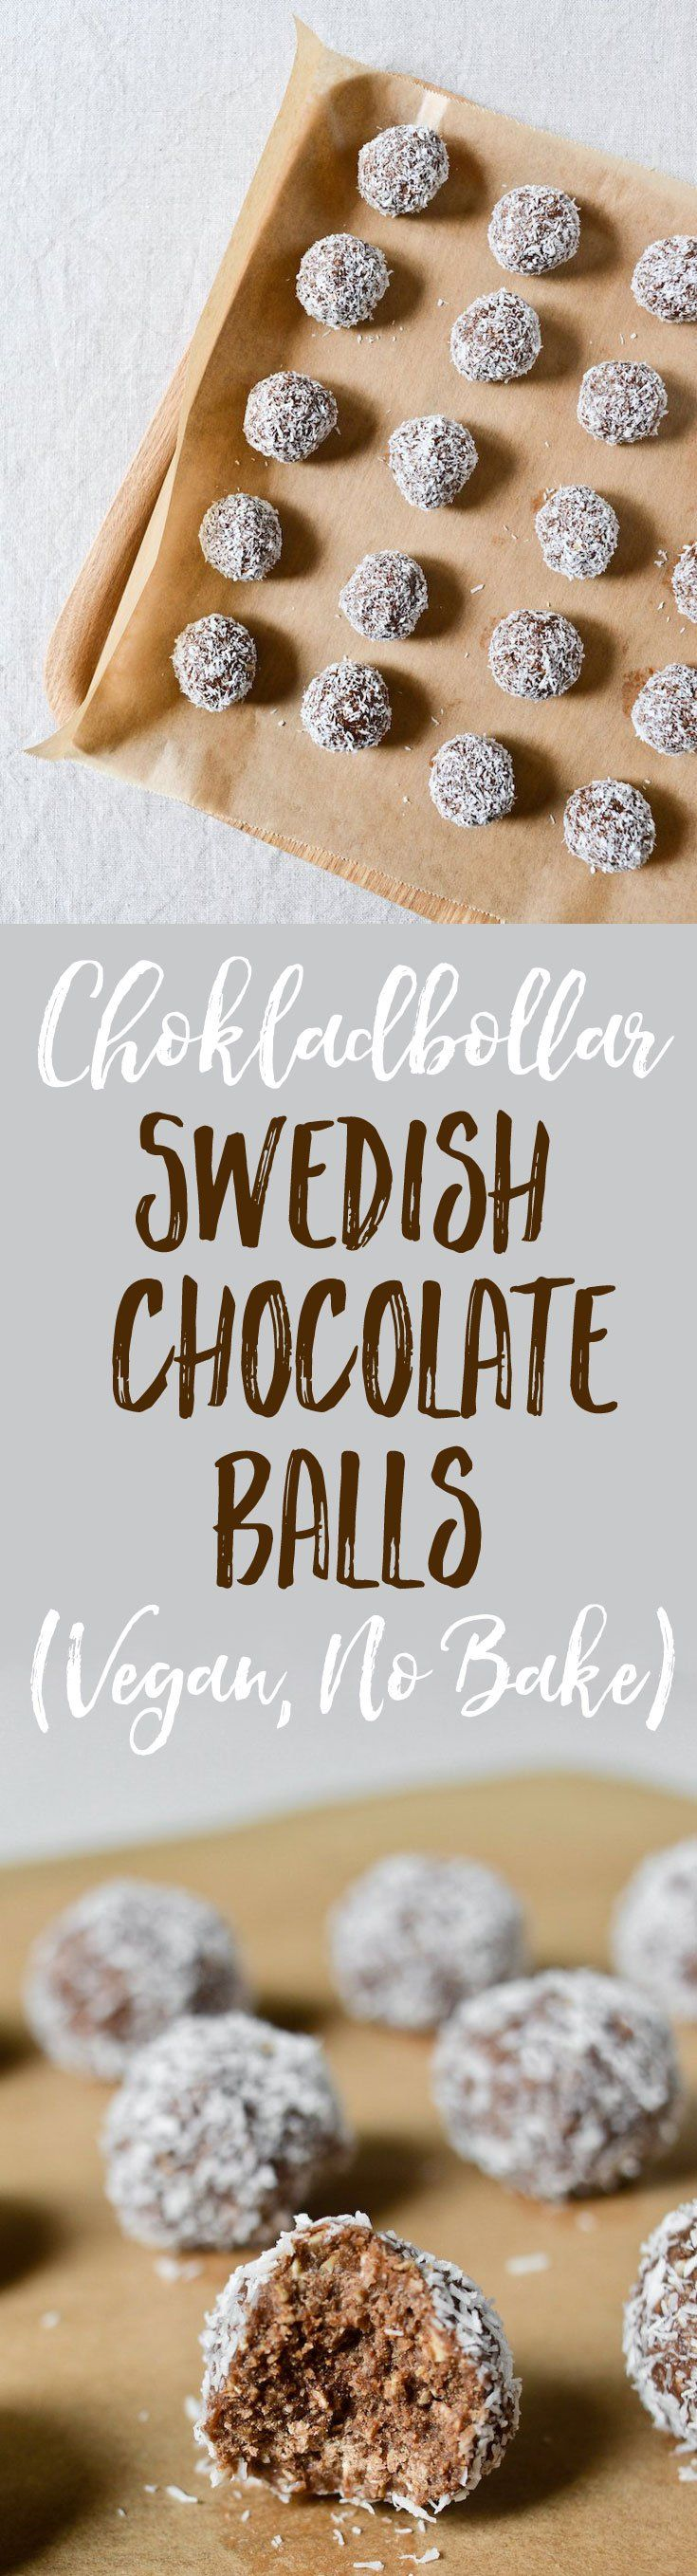 A super easy, no-cook, vegan recipe for the Swedish chocolate balls (Chockladbollar) Stockholm goes crazy for. Easy to make with kids. Video included!